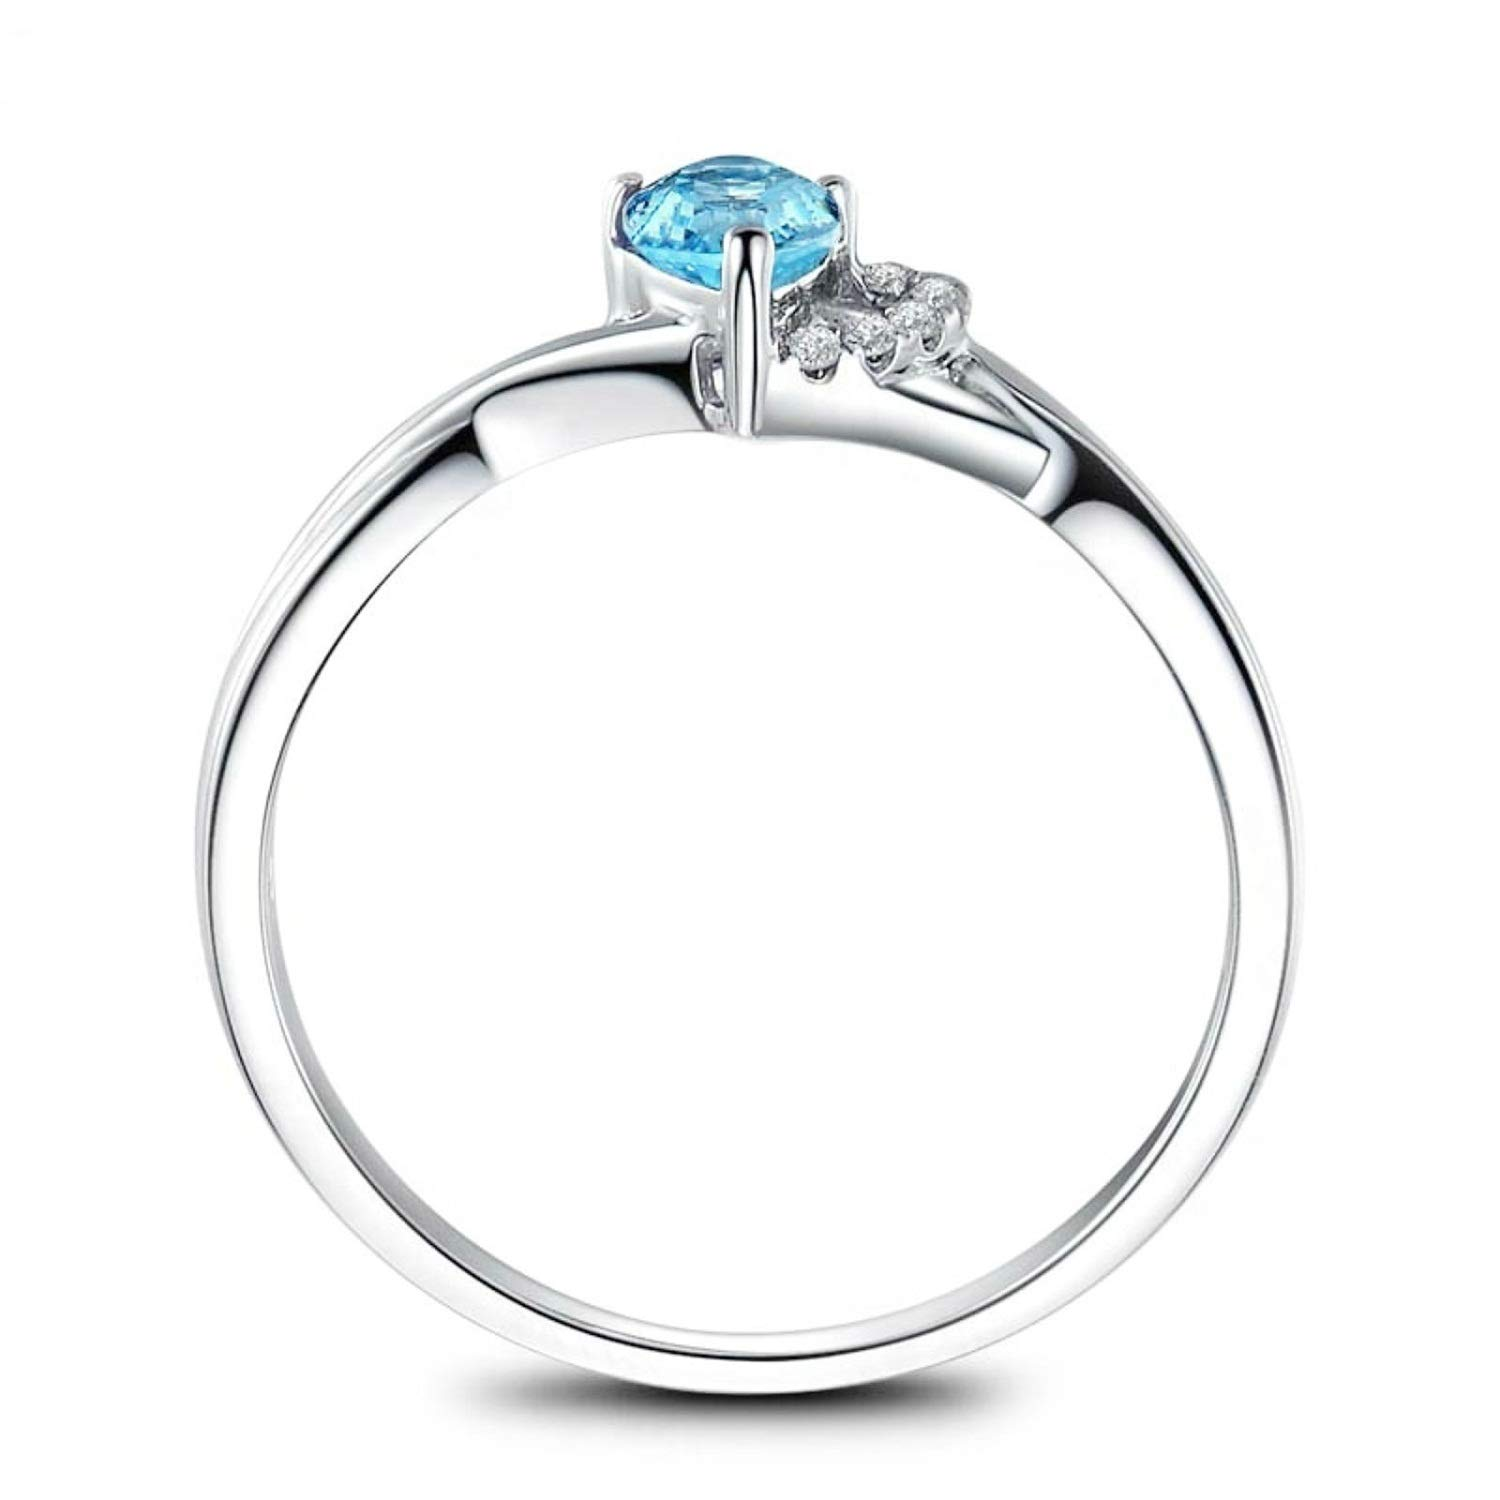 AMDXD Jewellery 925 Sterling Silver Engagement Ring Girls Blue Pear Cut Topaz Teardrop Ring